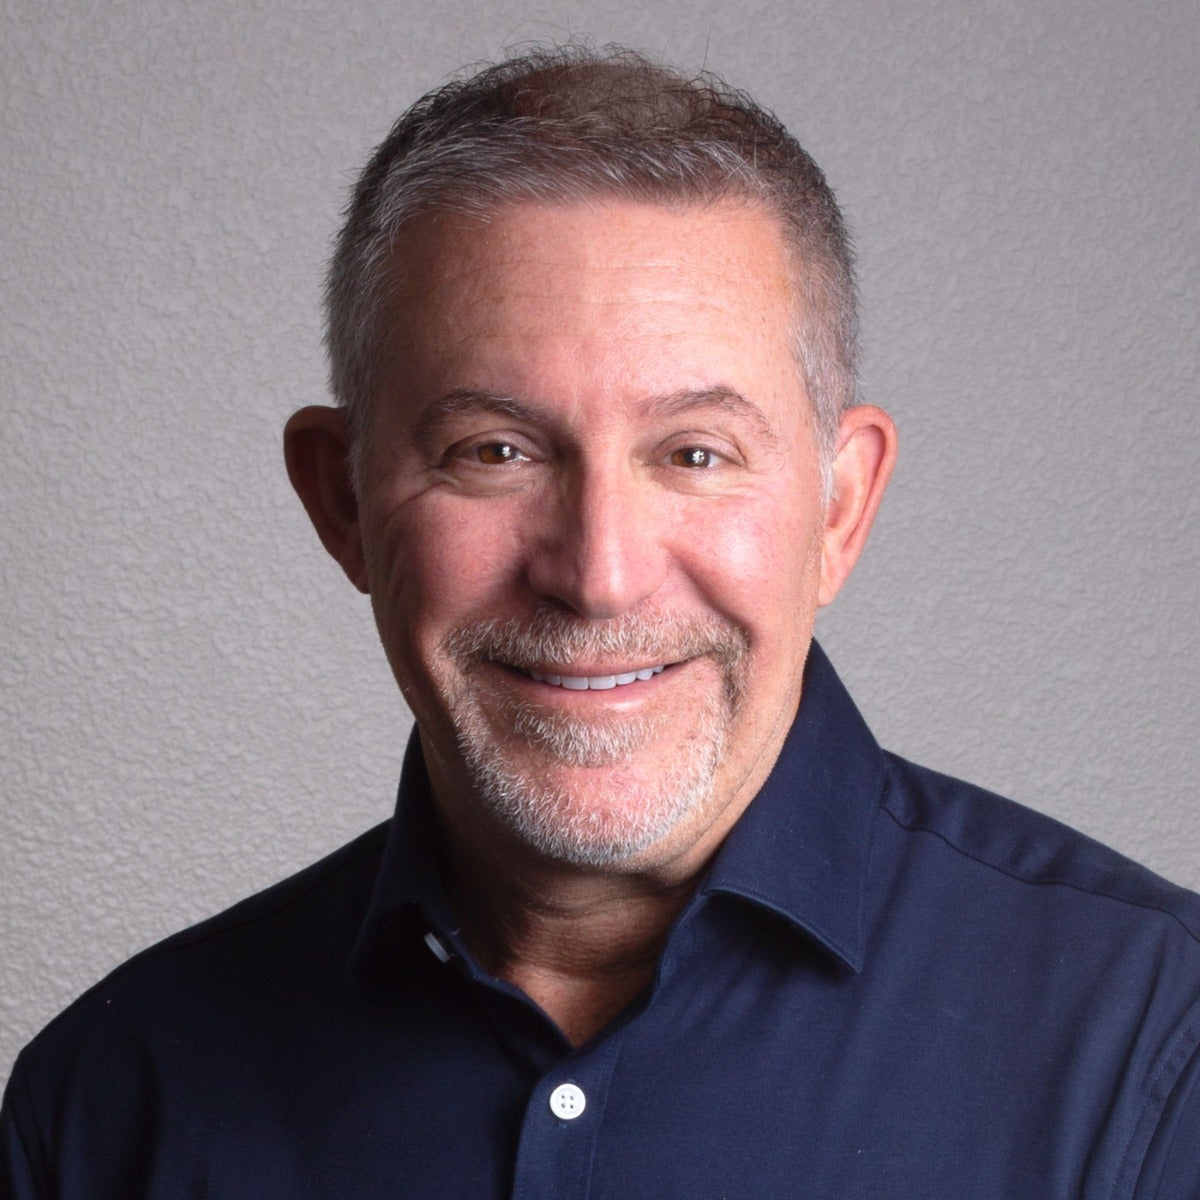 Cary Goldstein, DDS